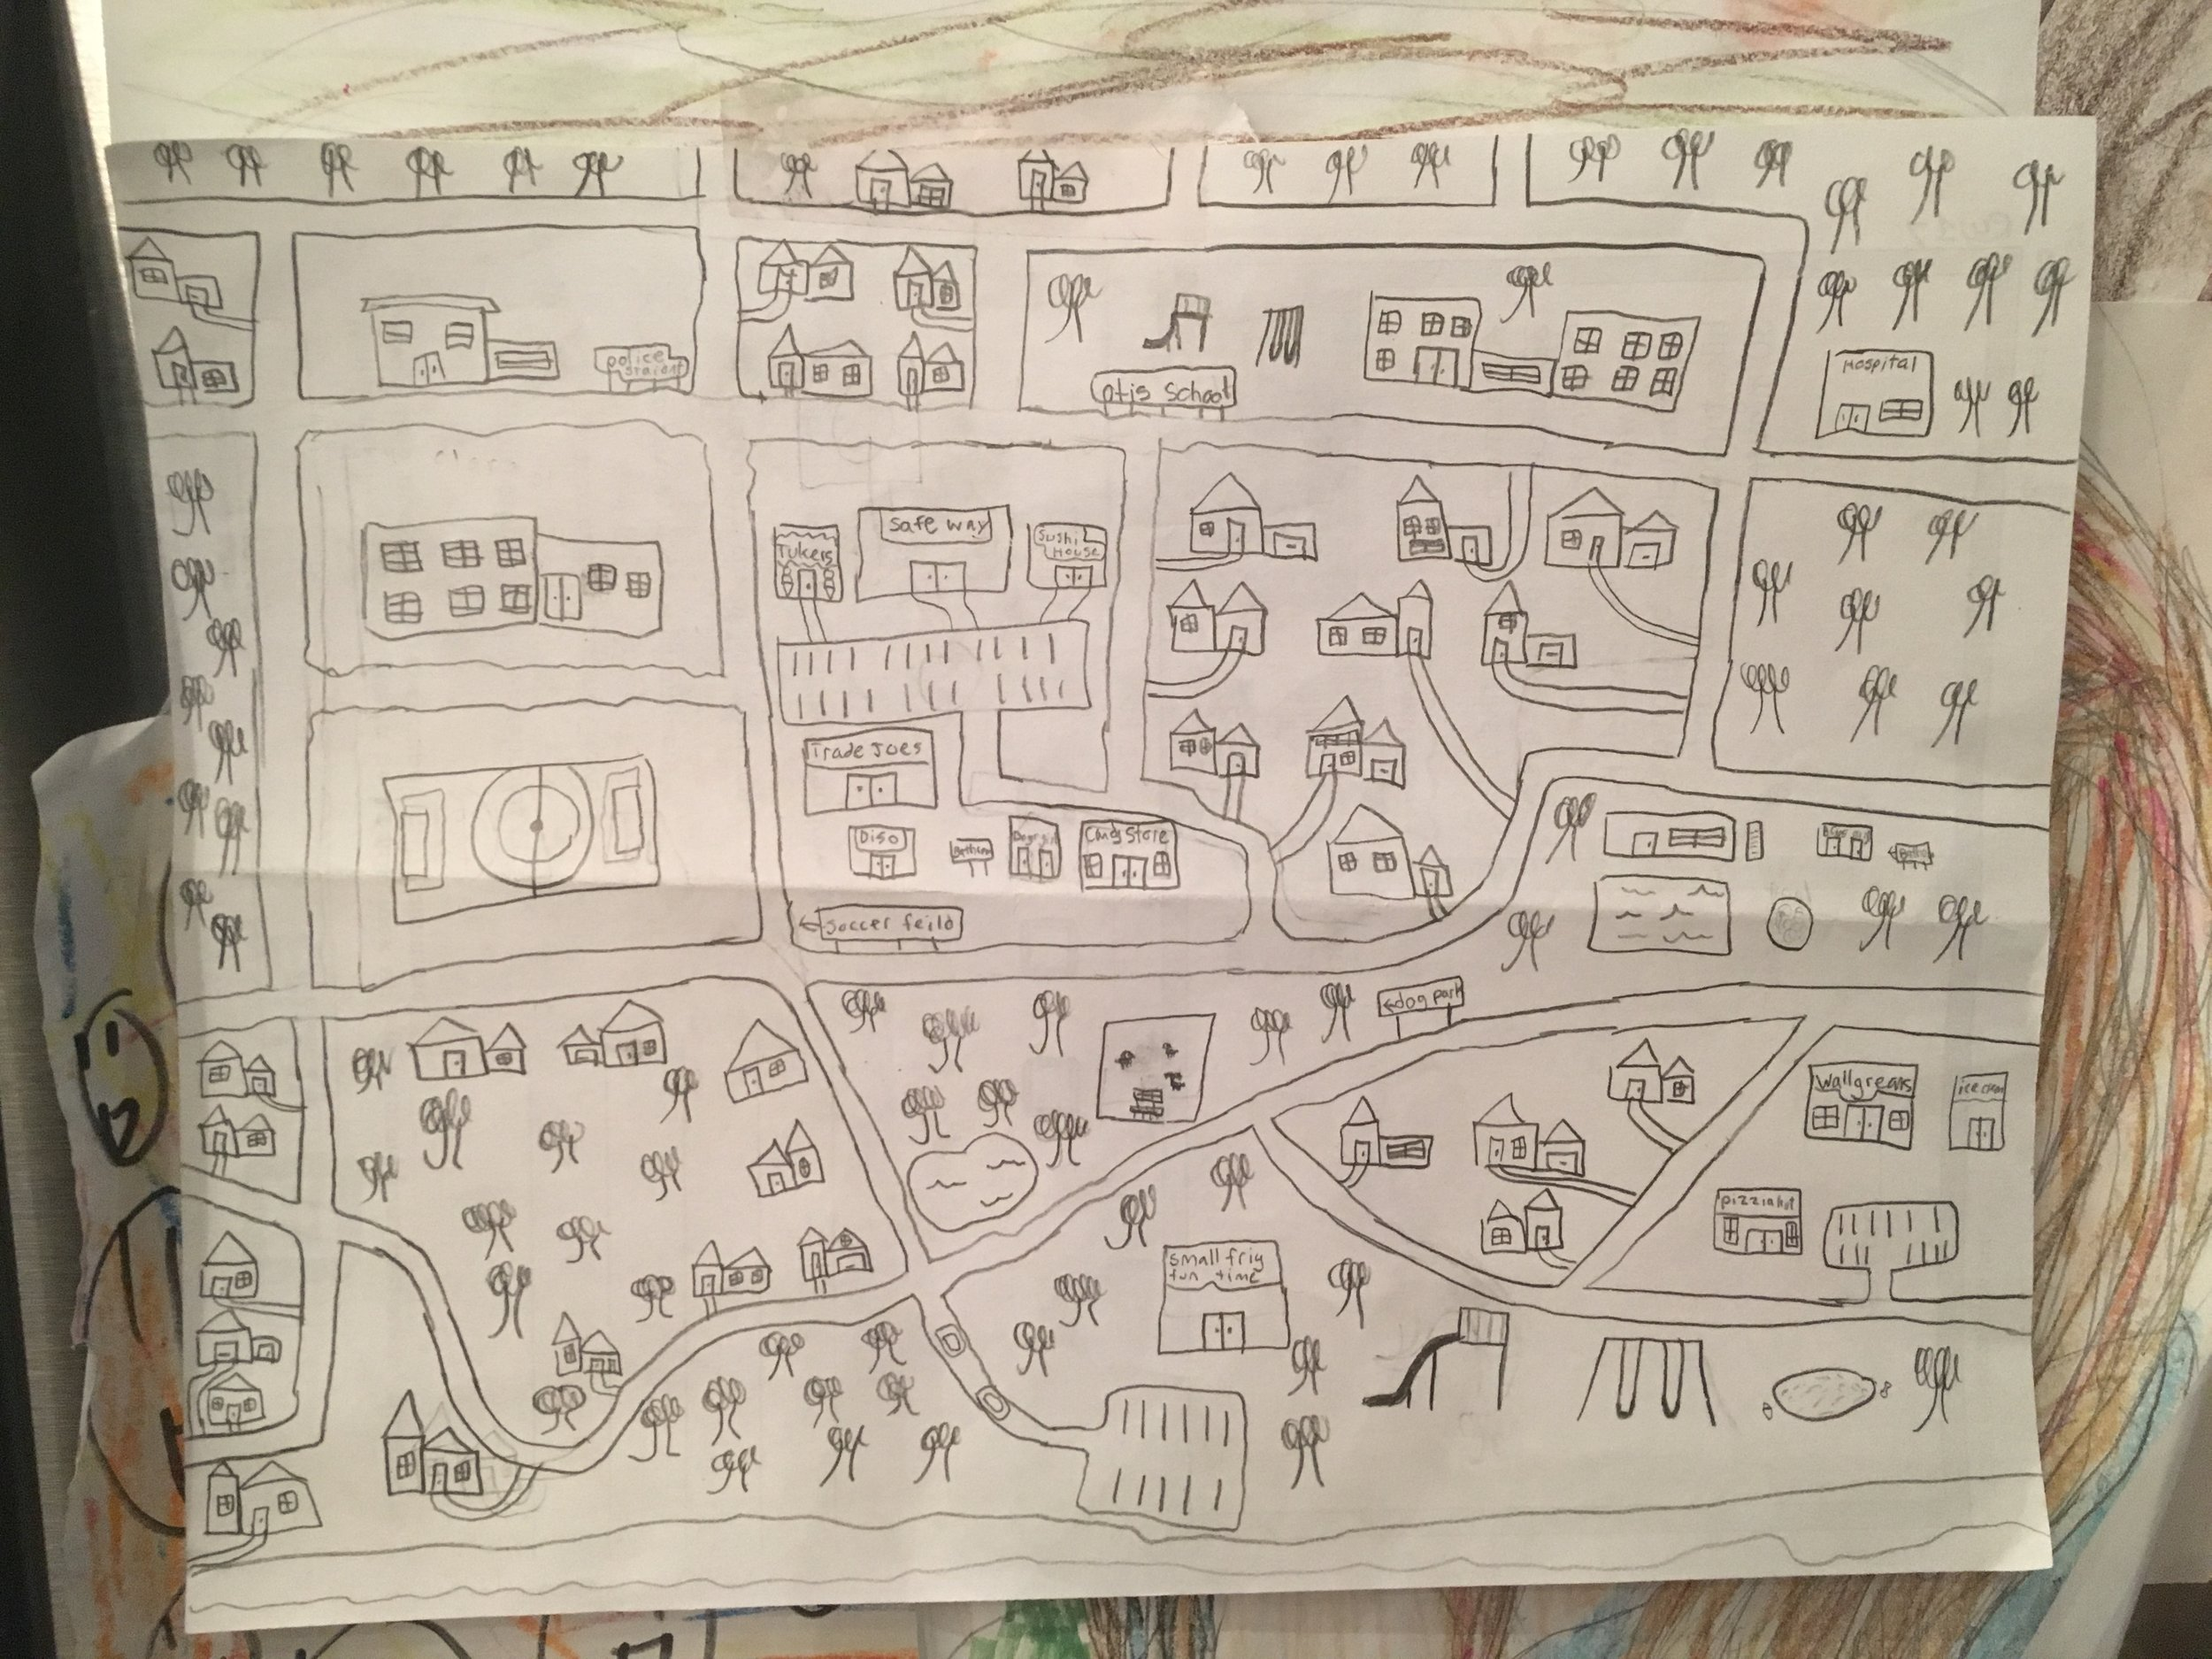 Here's the map currently gracing my refrigerator, created by my daughter